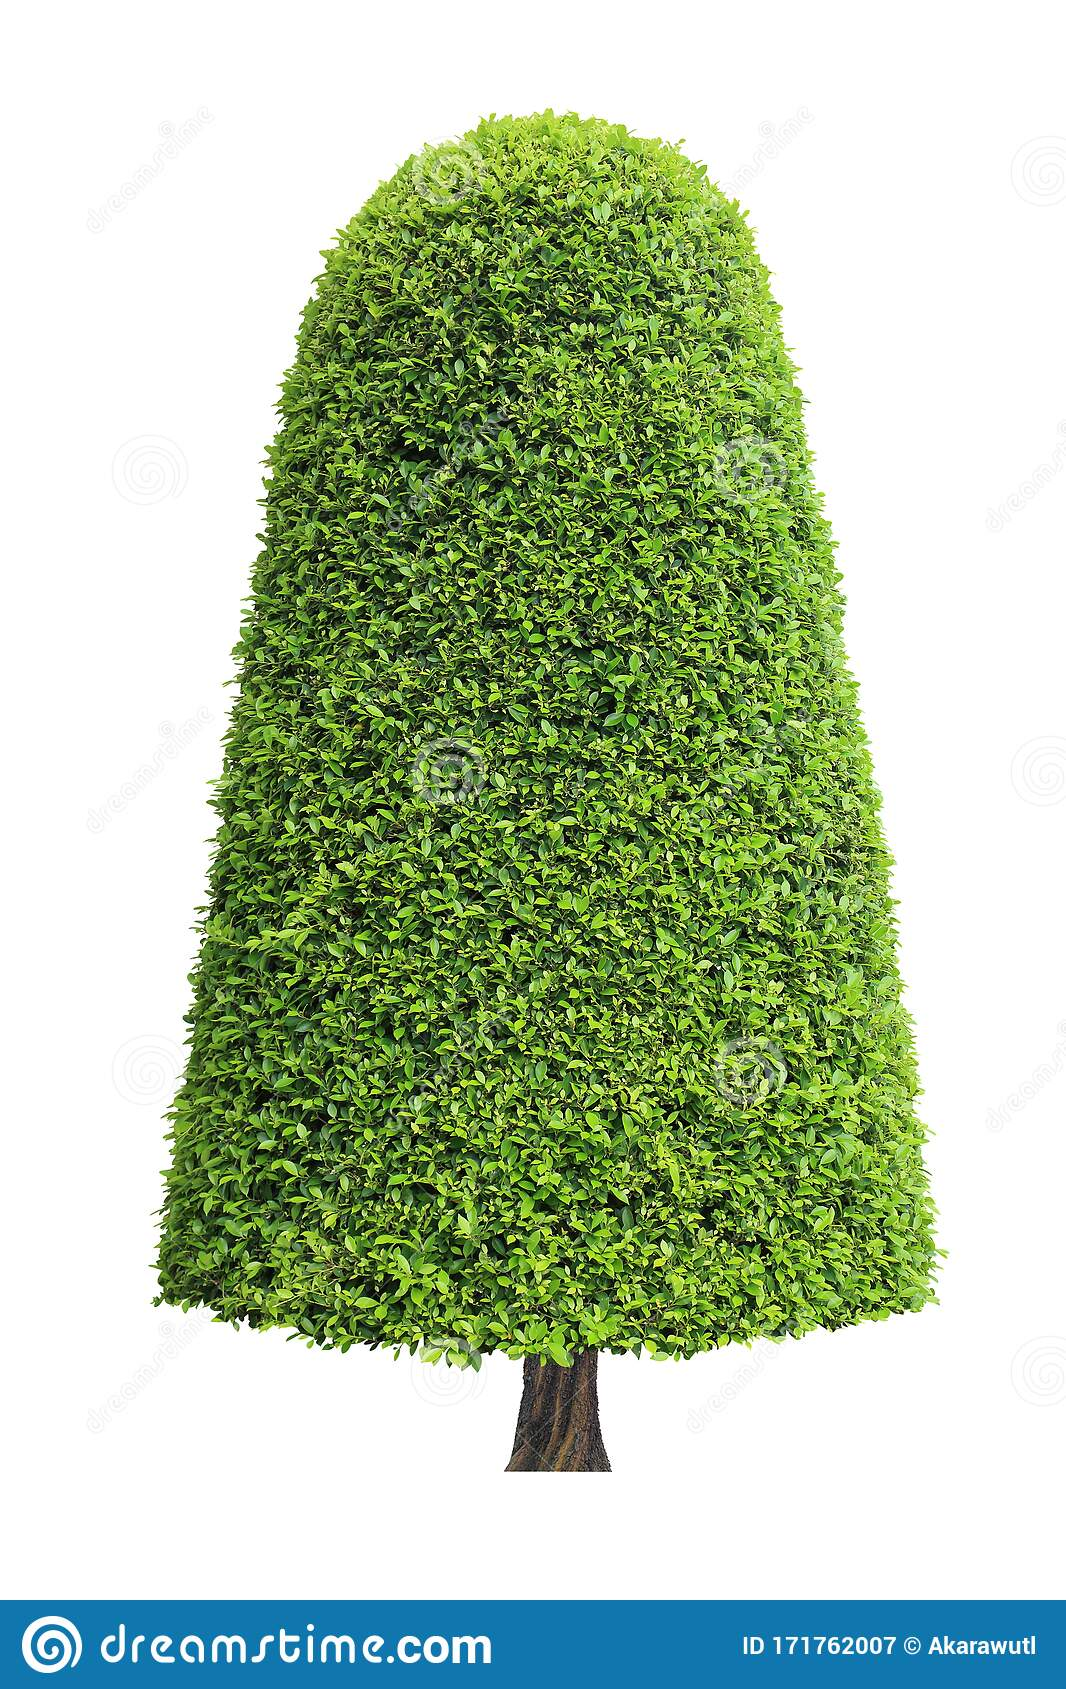 Symmetric Cone Shape Trim Topiary Tree Isolated On White Background For English Formal And Artistic Design Garden With Clipping Pa Stock Image Image Of English Branch 171762007